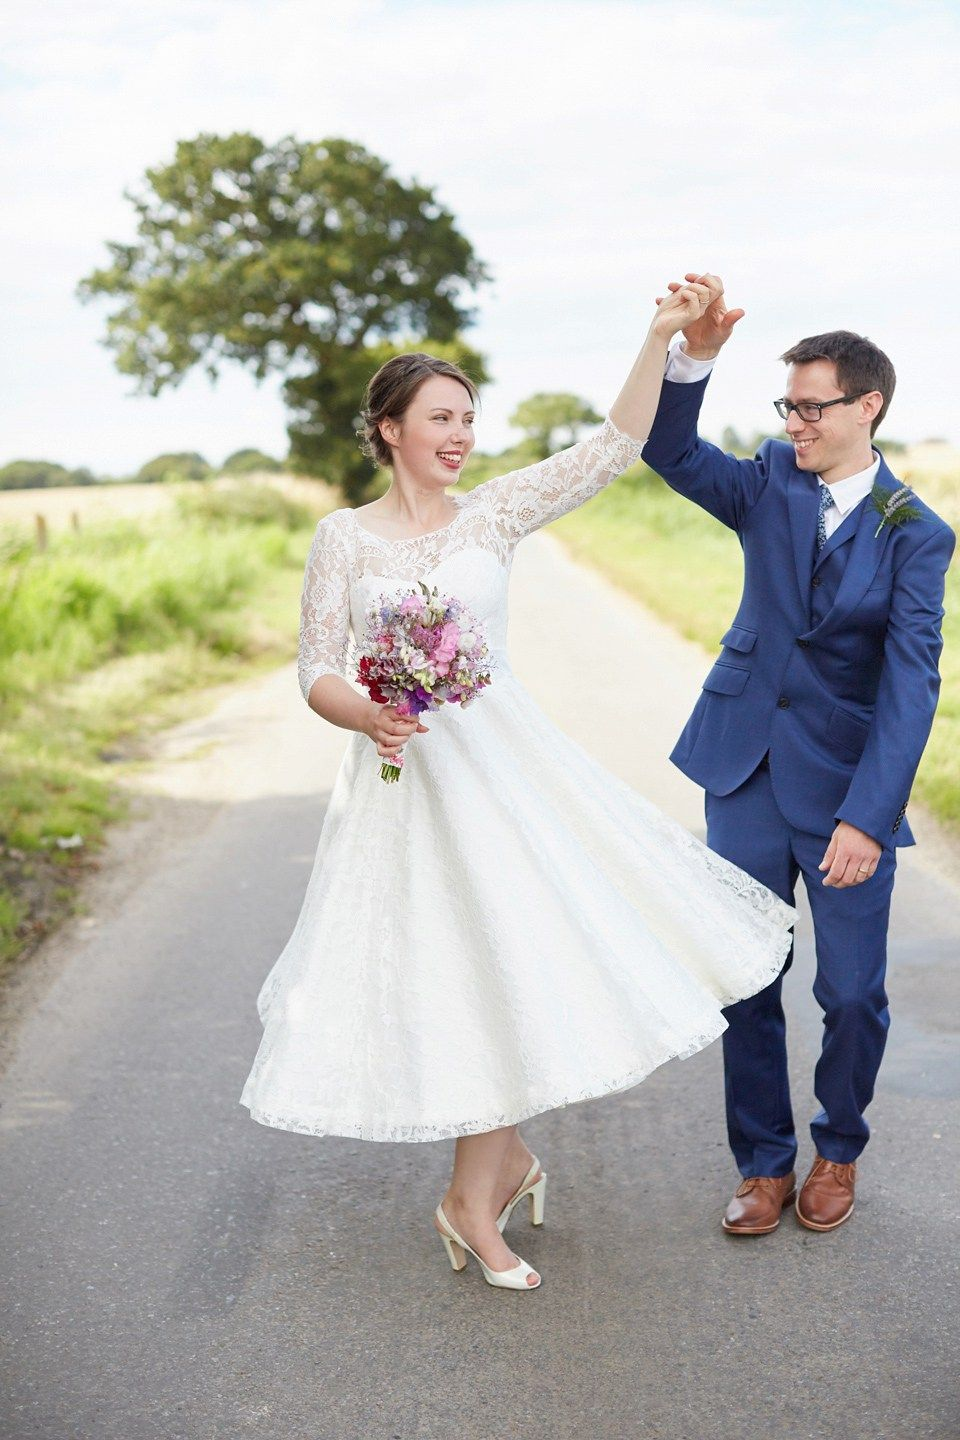 50s wedding dress A s Dress for a Flower Filled and Vintage Inspired Wedding in the Norfolk Countryside